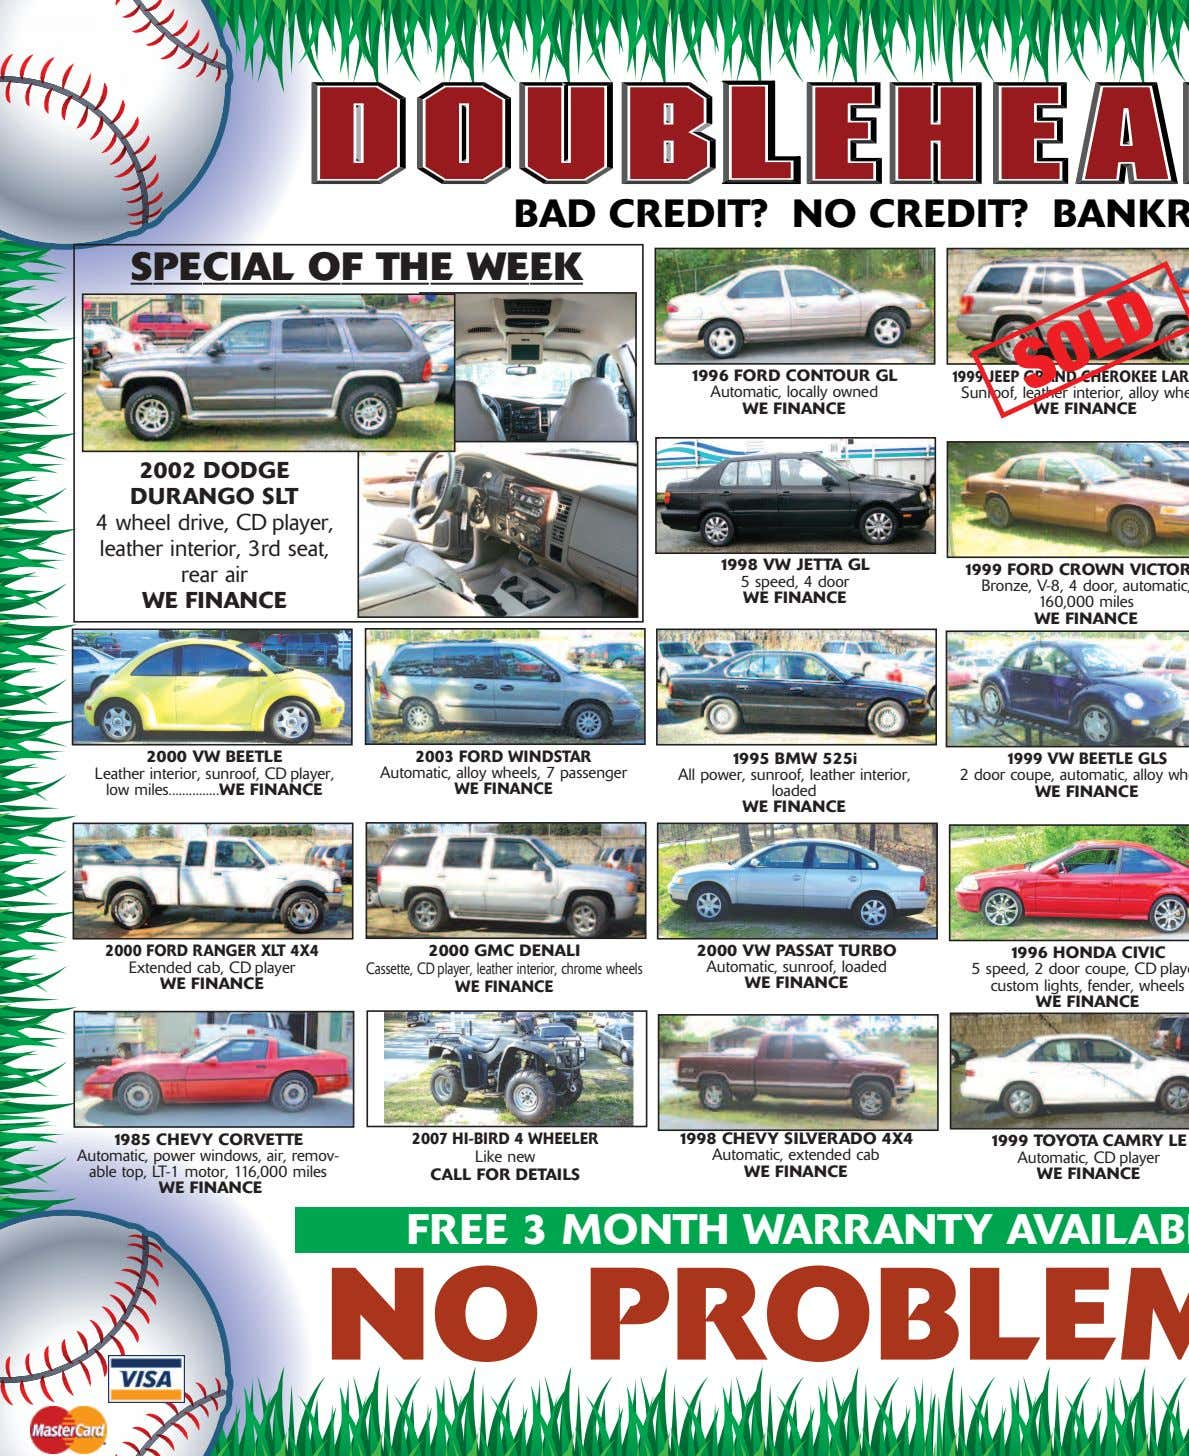 BAD CREDIT? NO CREDIT? BANKR SPECIAL OF THE WEEK 1996 FORD CONTOUR GL Automatic, locally